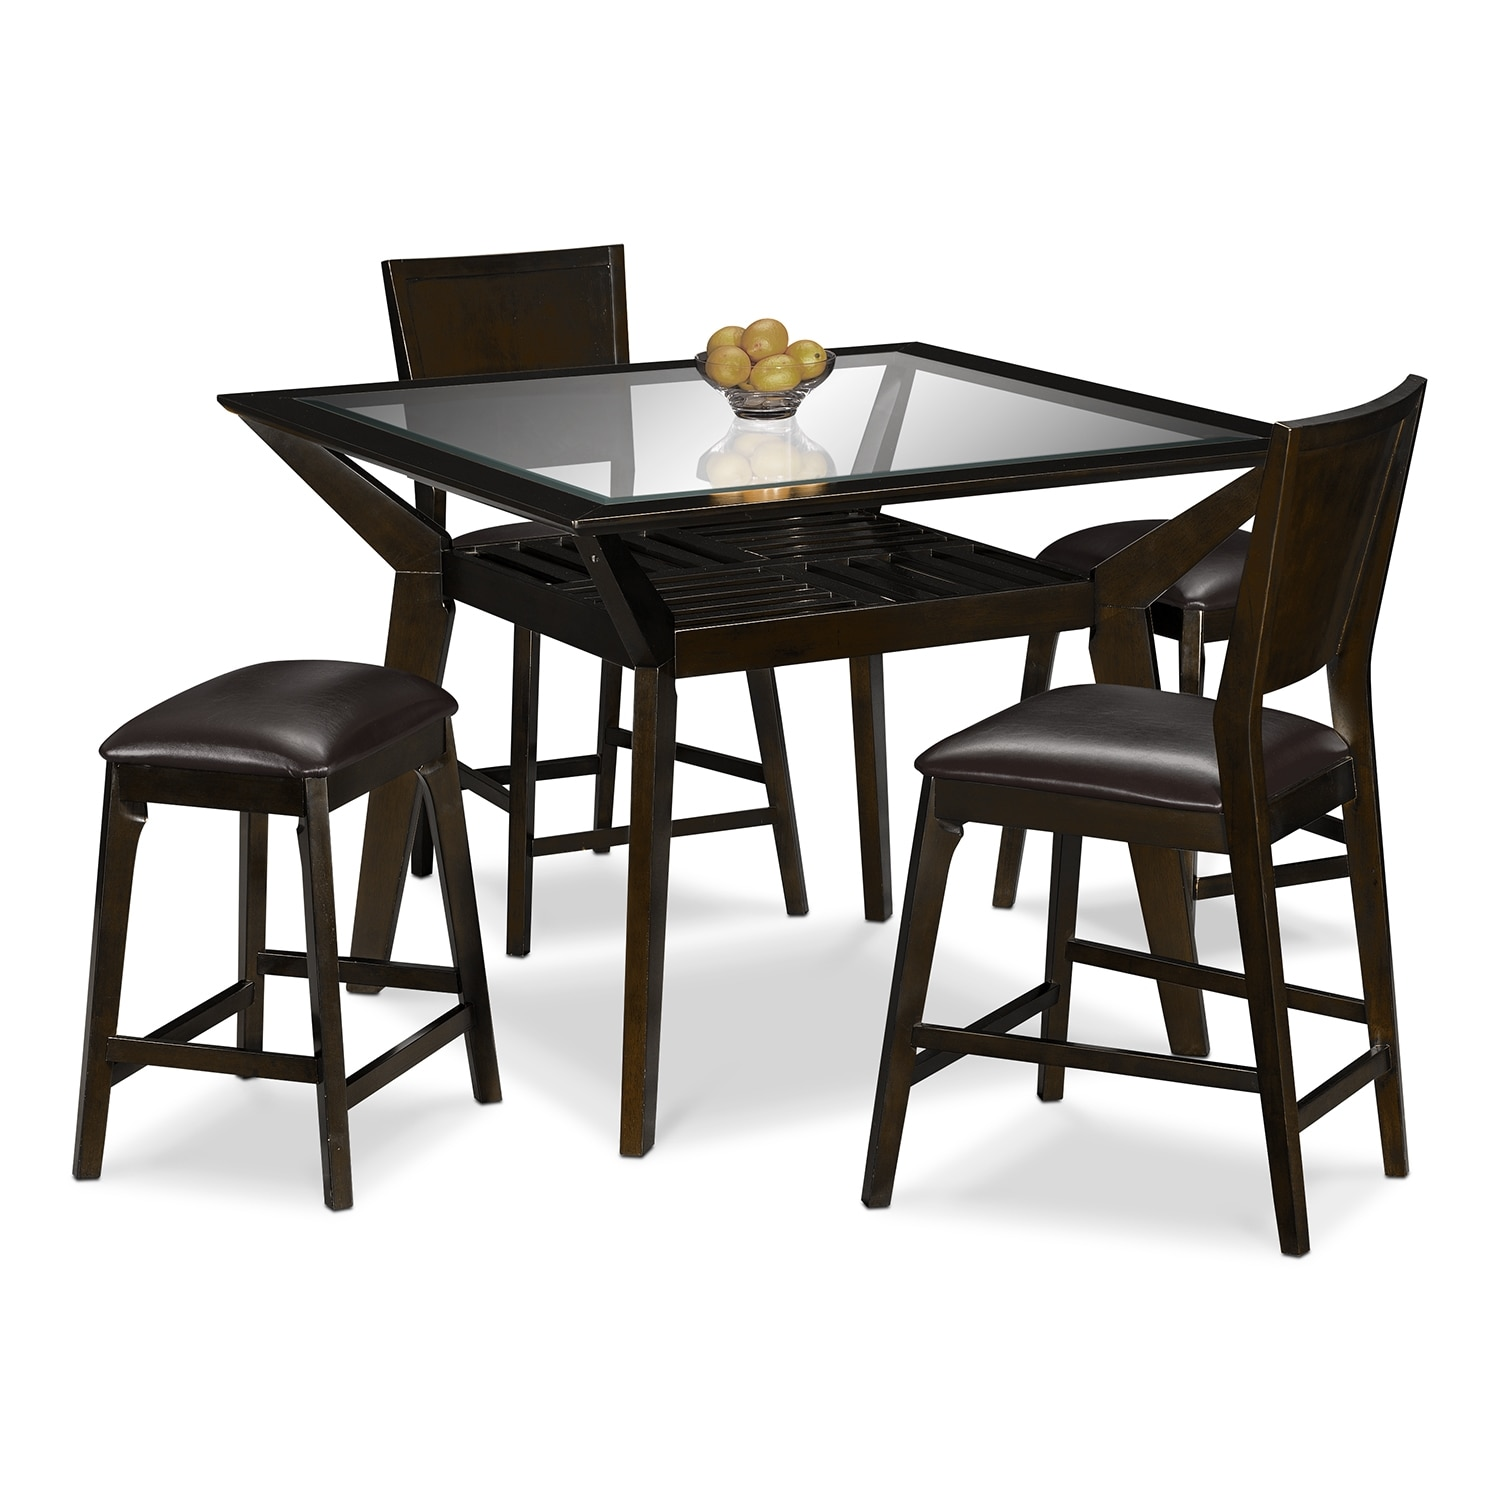 Dining Room Table For 2: Mystic Counter-Height Table, 2 Chairs And 2 Backless